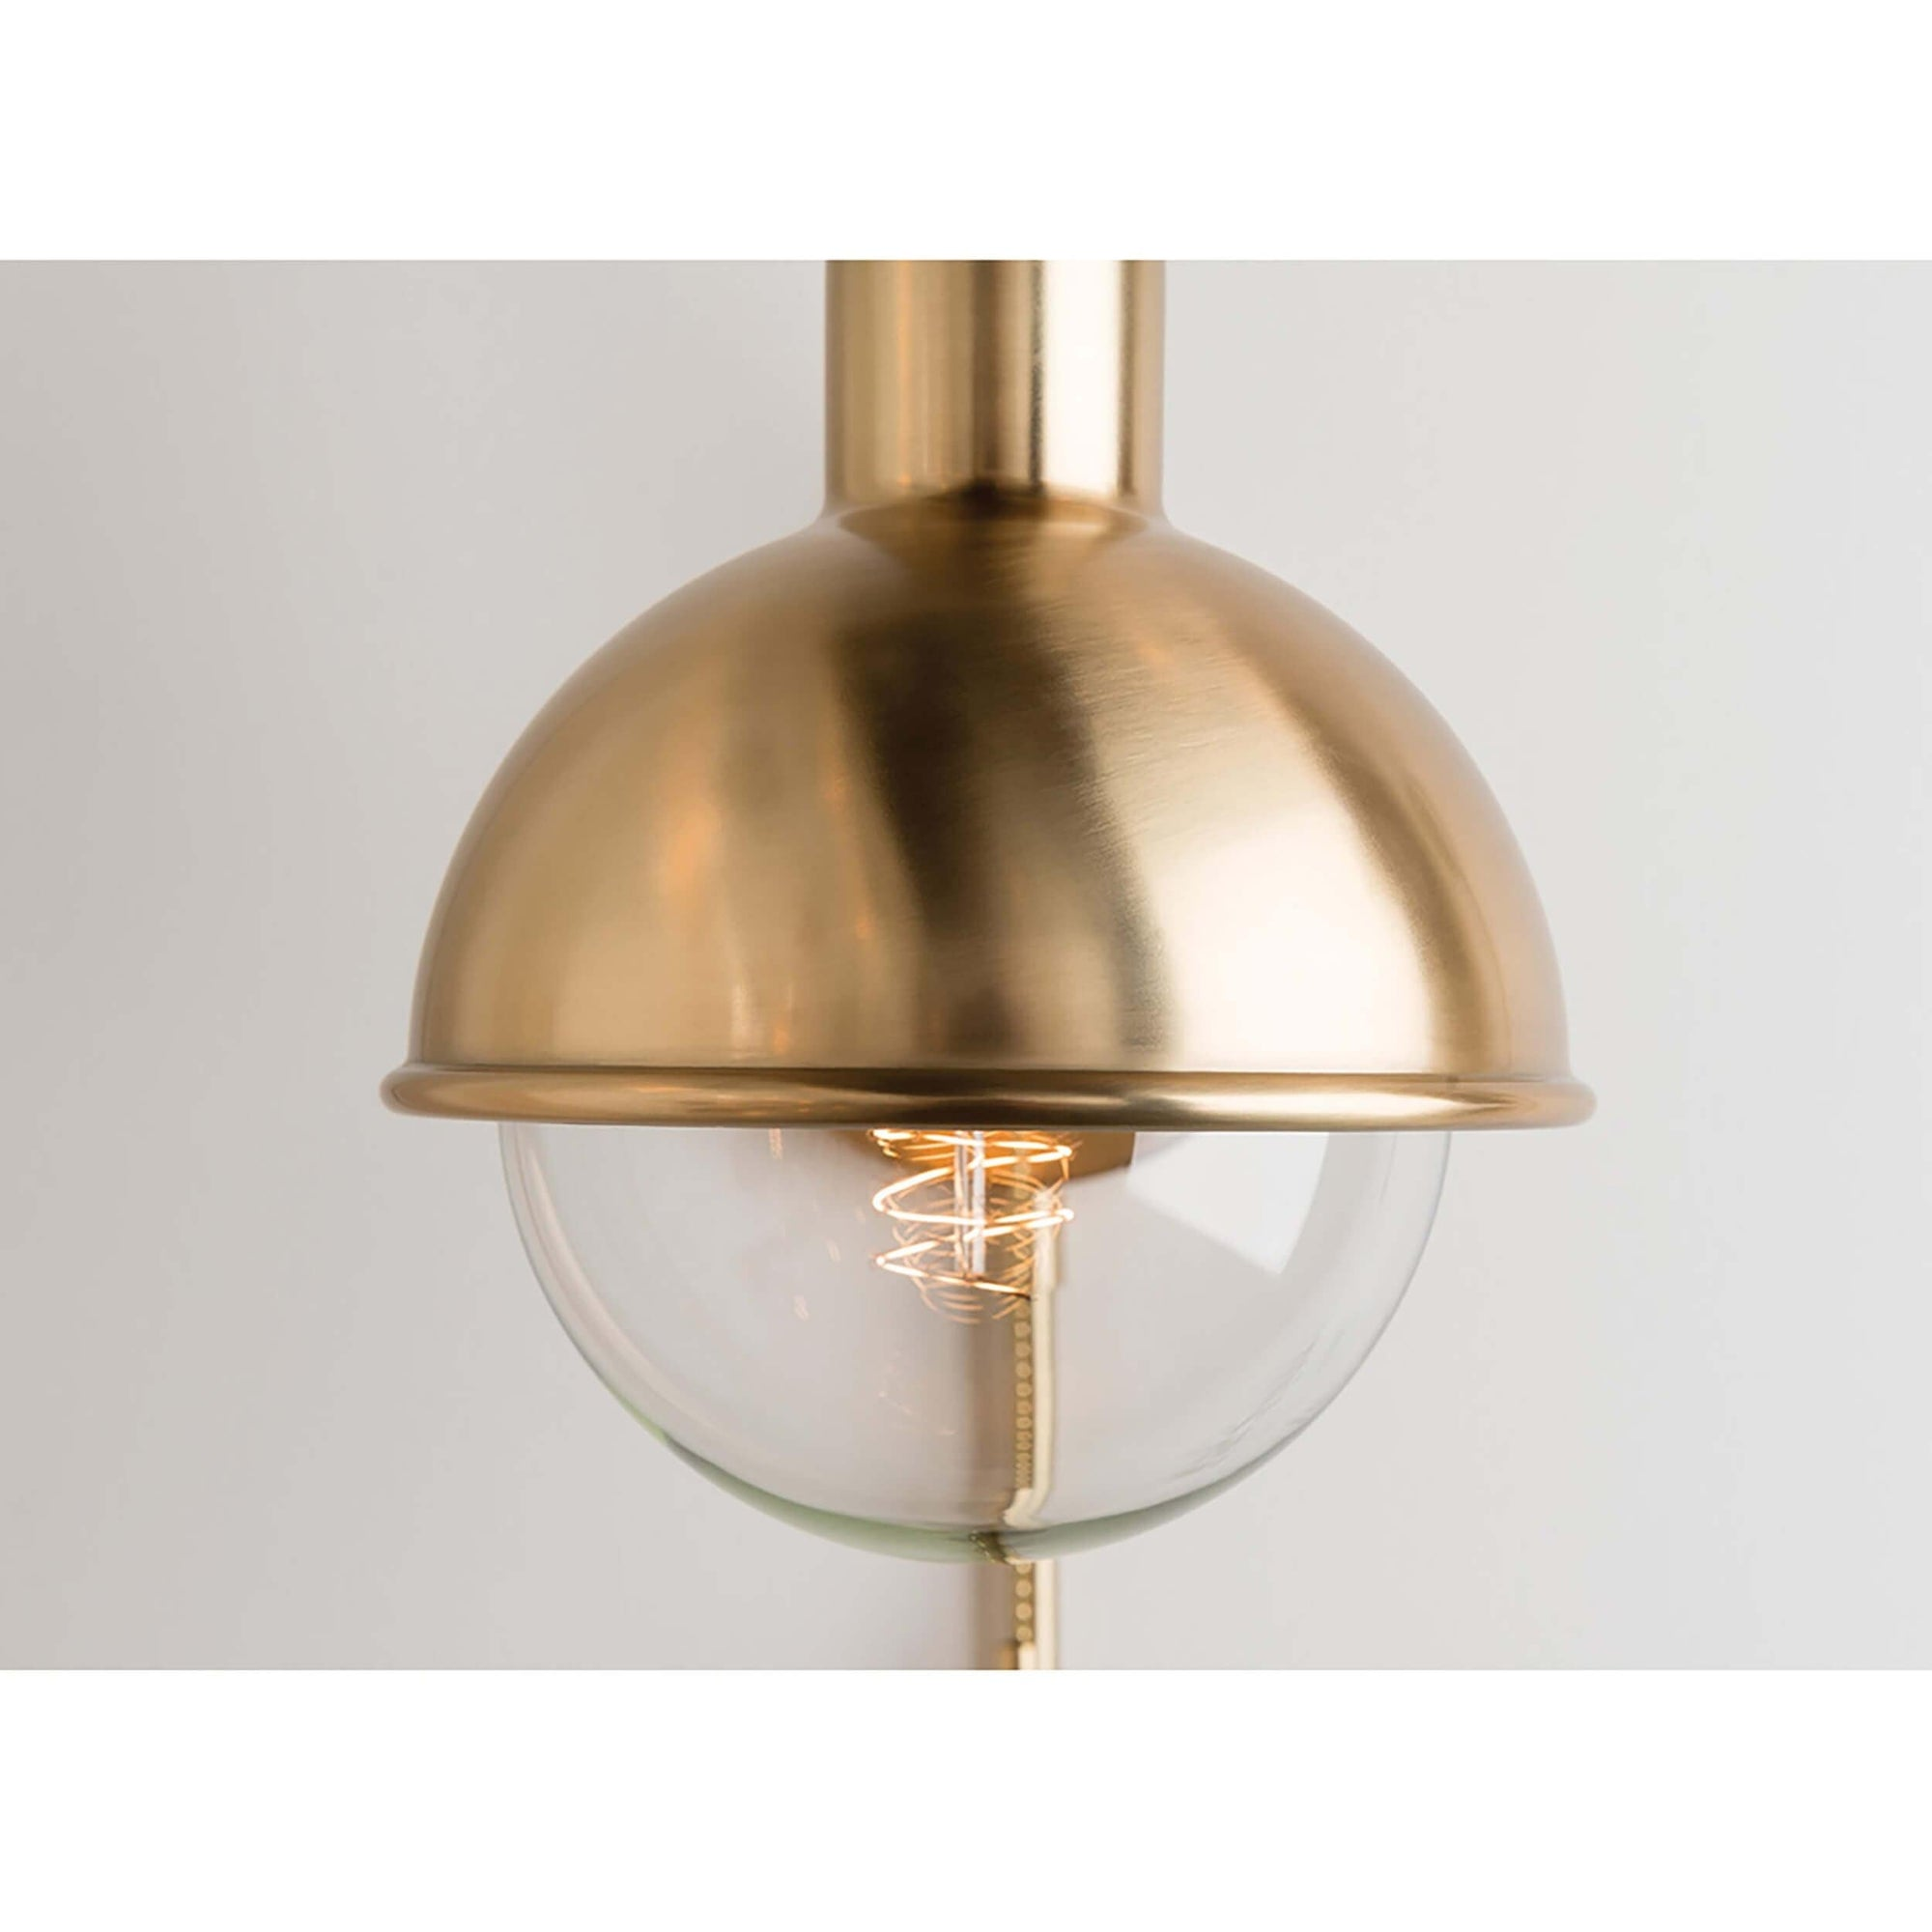 Riley Wall Sconce, Aged Brass - High Fashion Home on Aged Brass Wall Sconce id=74916